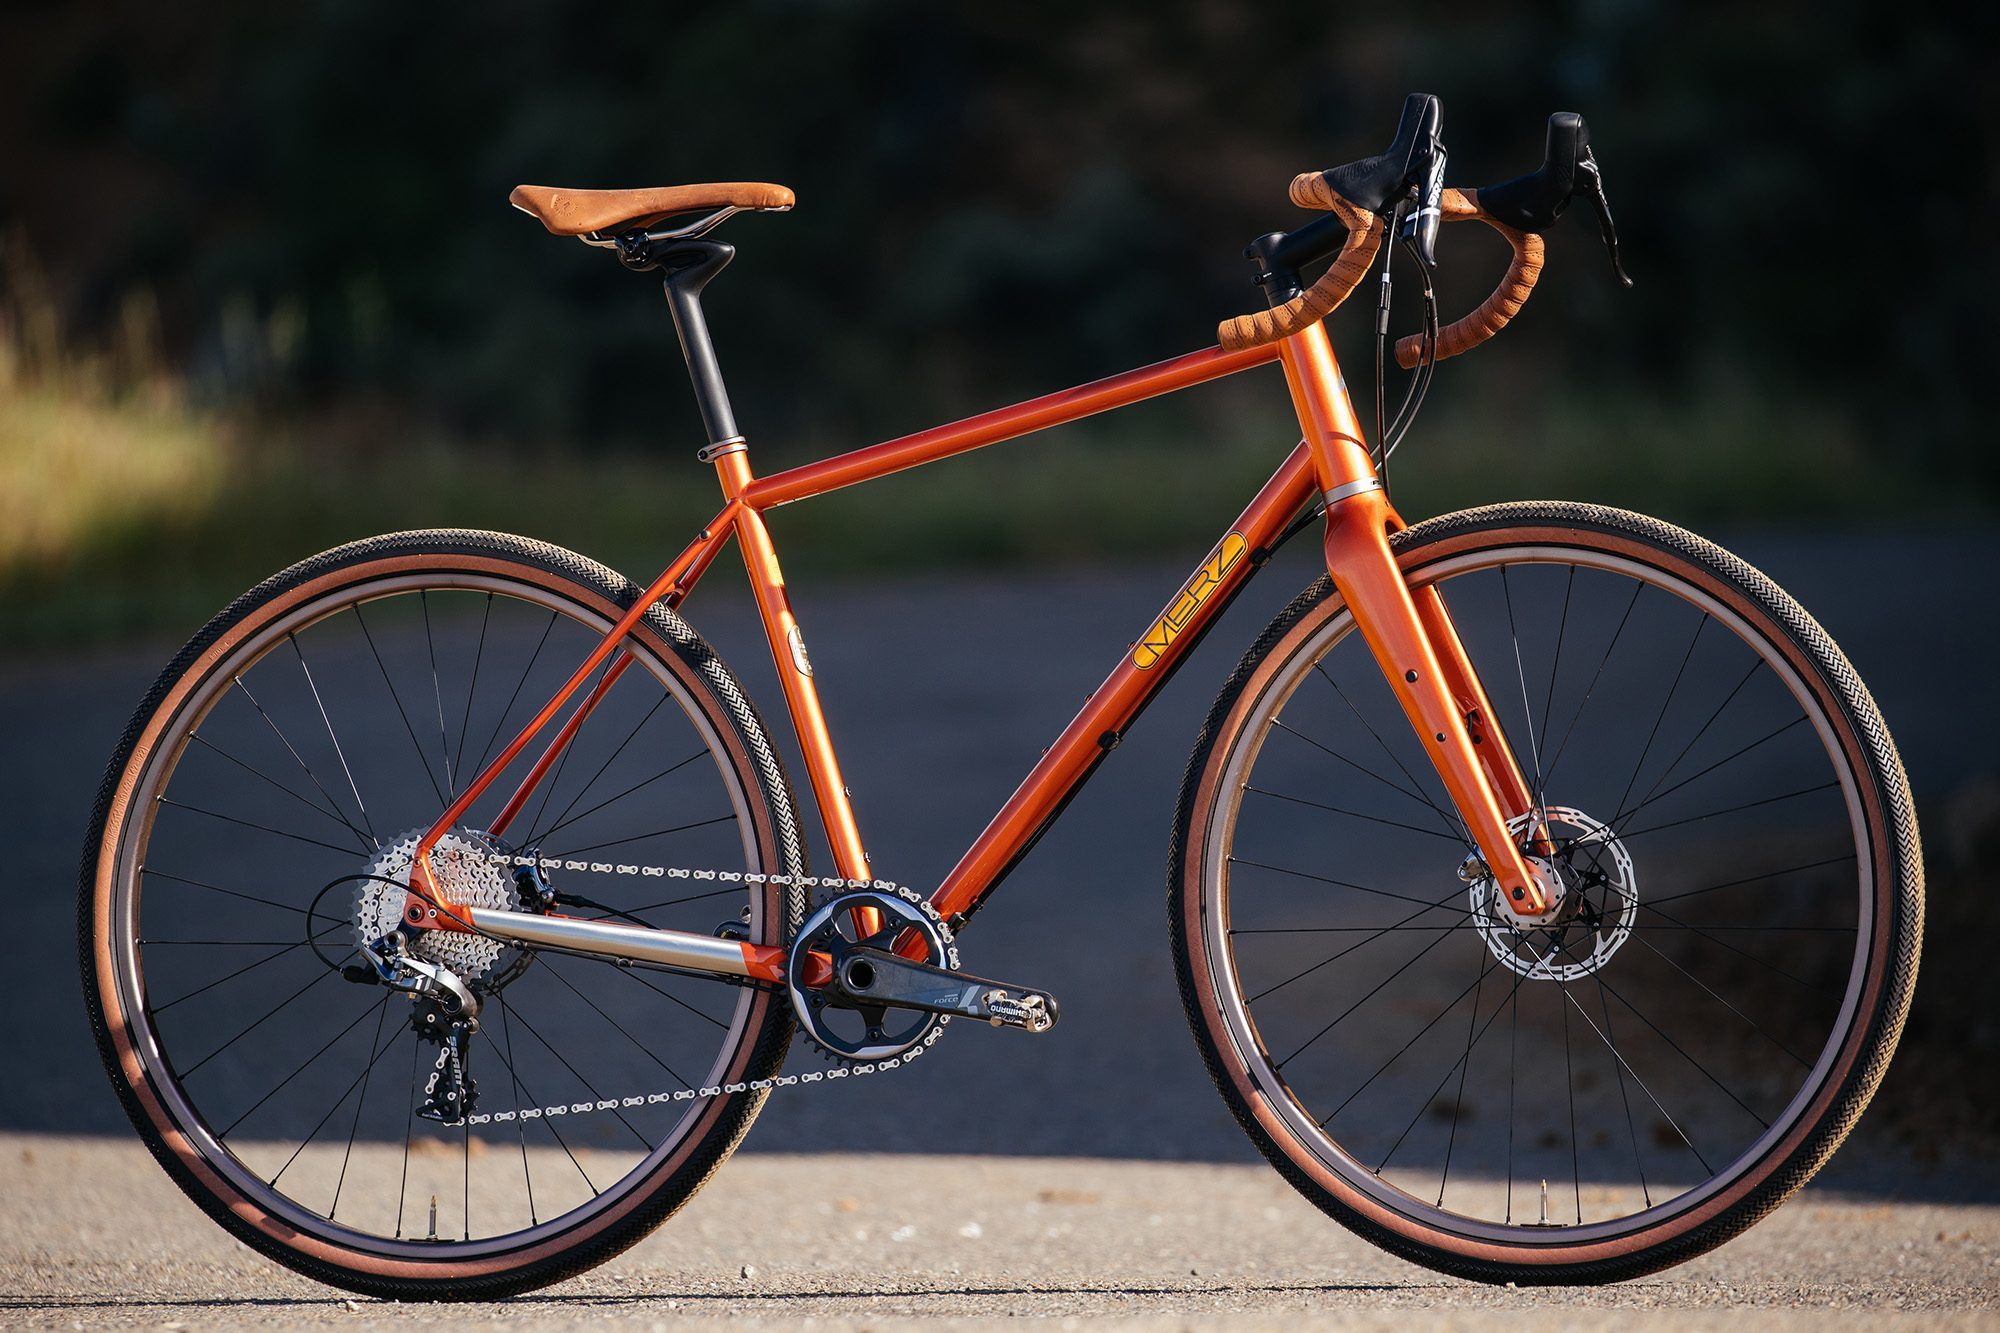 """b18040f5ff7 These bikes come in a vibrant """"Valencia Orange"""" with metallic fleck. The  Cruzero wheels, headset and seat clamp has a special, custom anodization."""